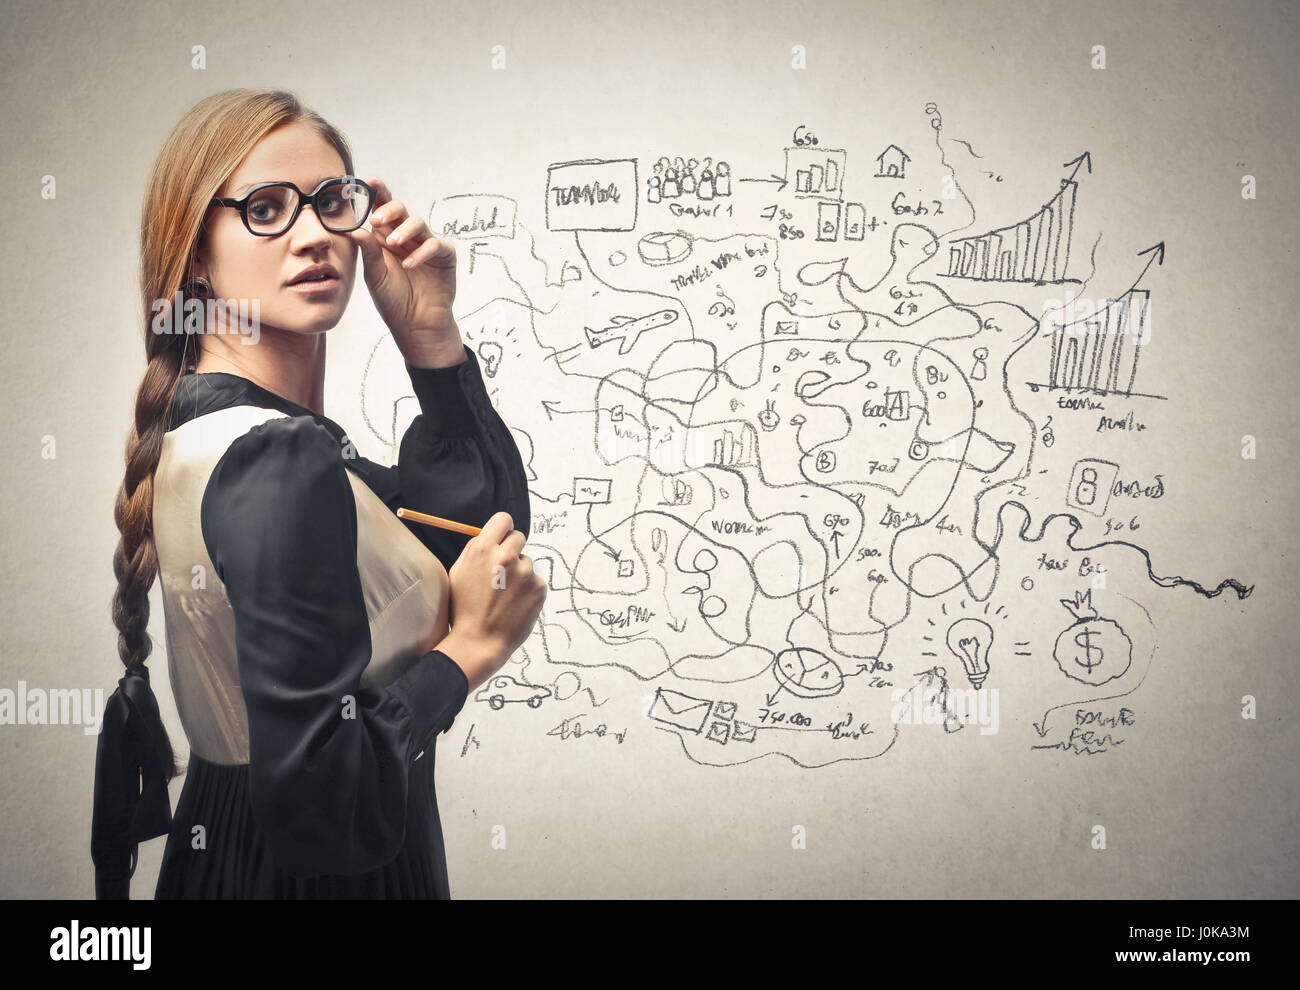 Blond woman making a business plan - Stock Image